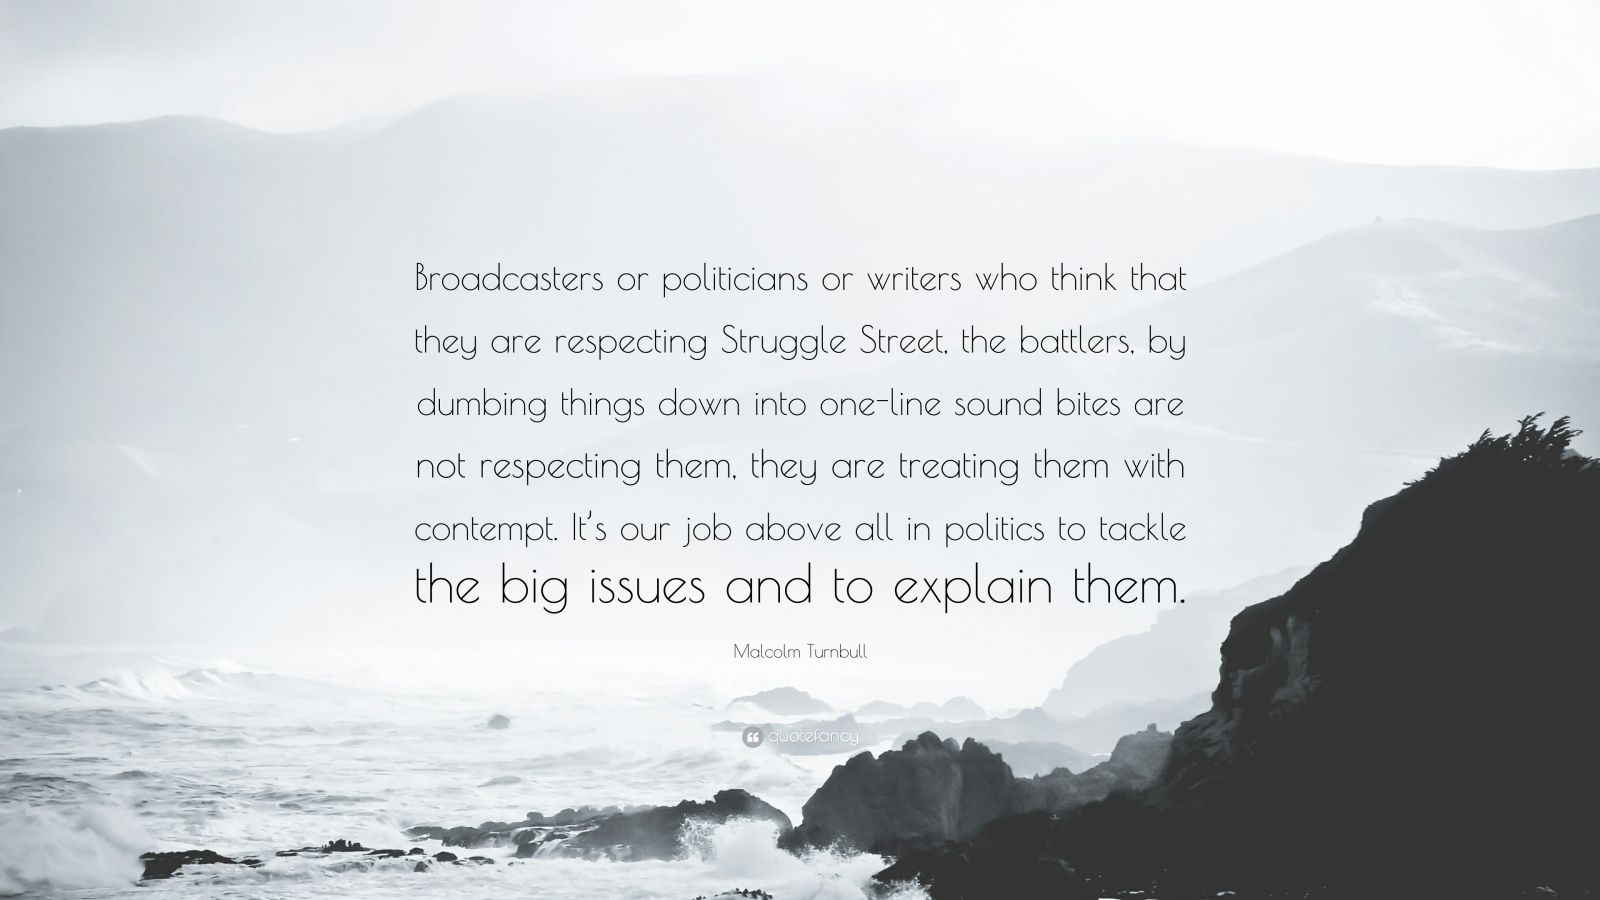 """Malcolm Turnbull Quote: """"Broadcasters or politicians or writers who think that they are respecting Struggle Street, the battlers, by dumbing things down into one-line sound bites are not respecting them, they are treating them with contempt. It's our job above all in politics to tackle the big issues and to explain them."""""""